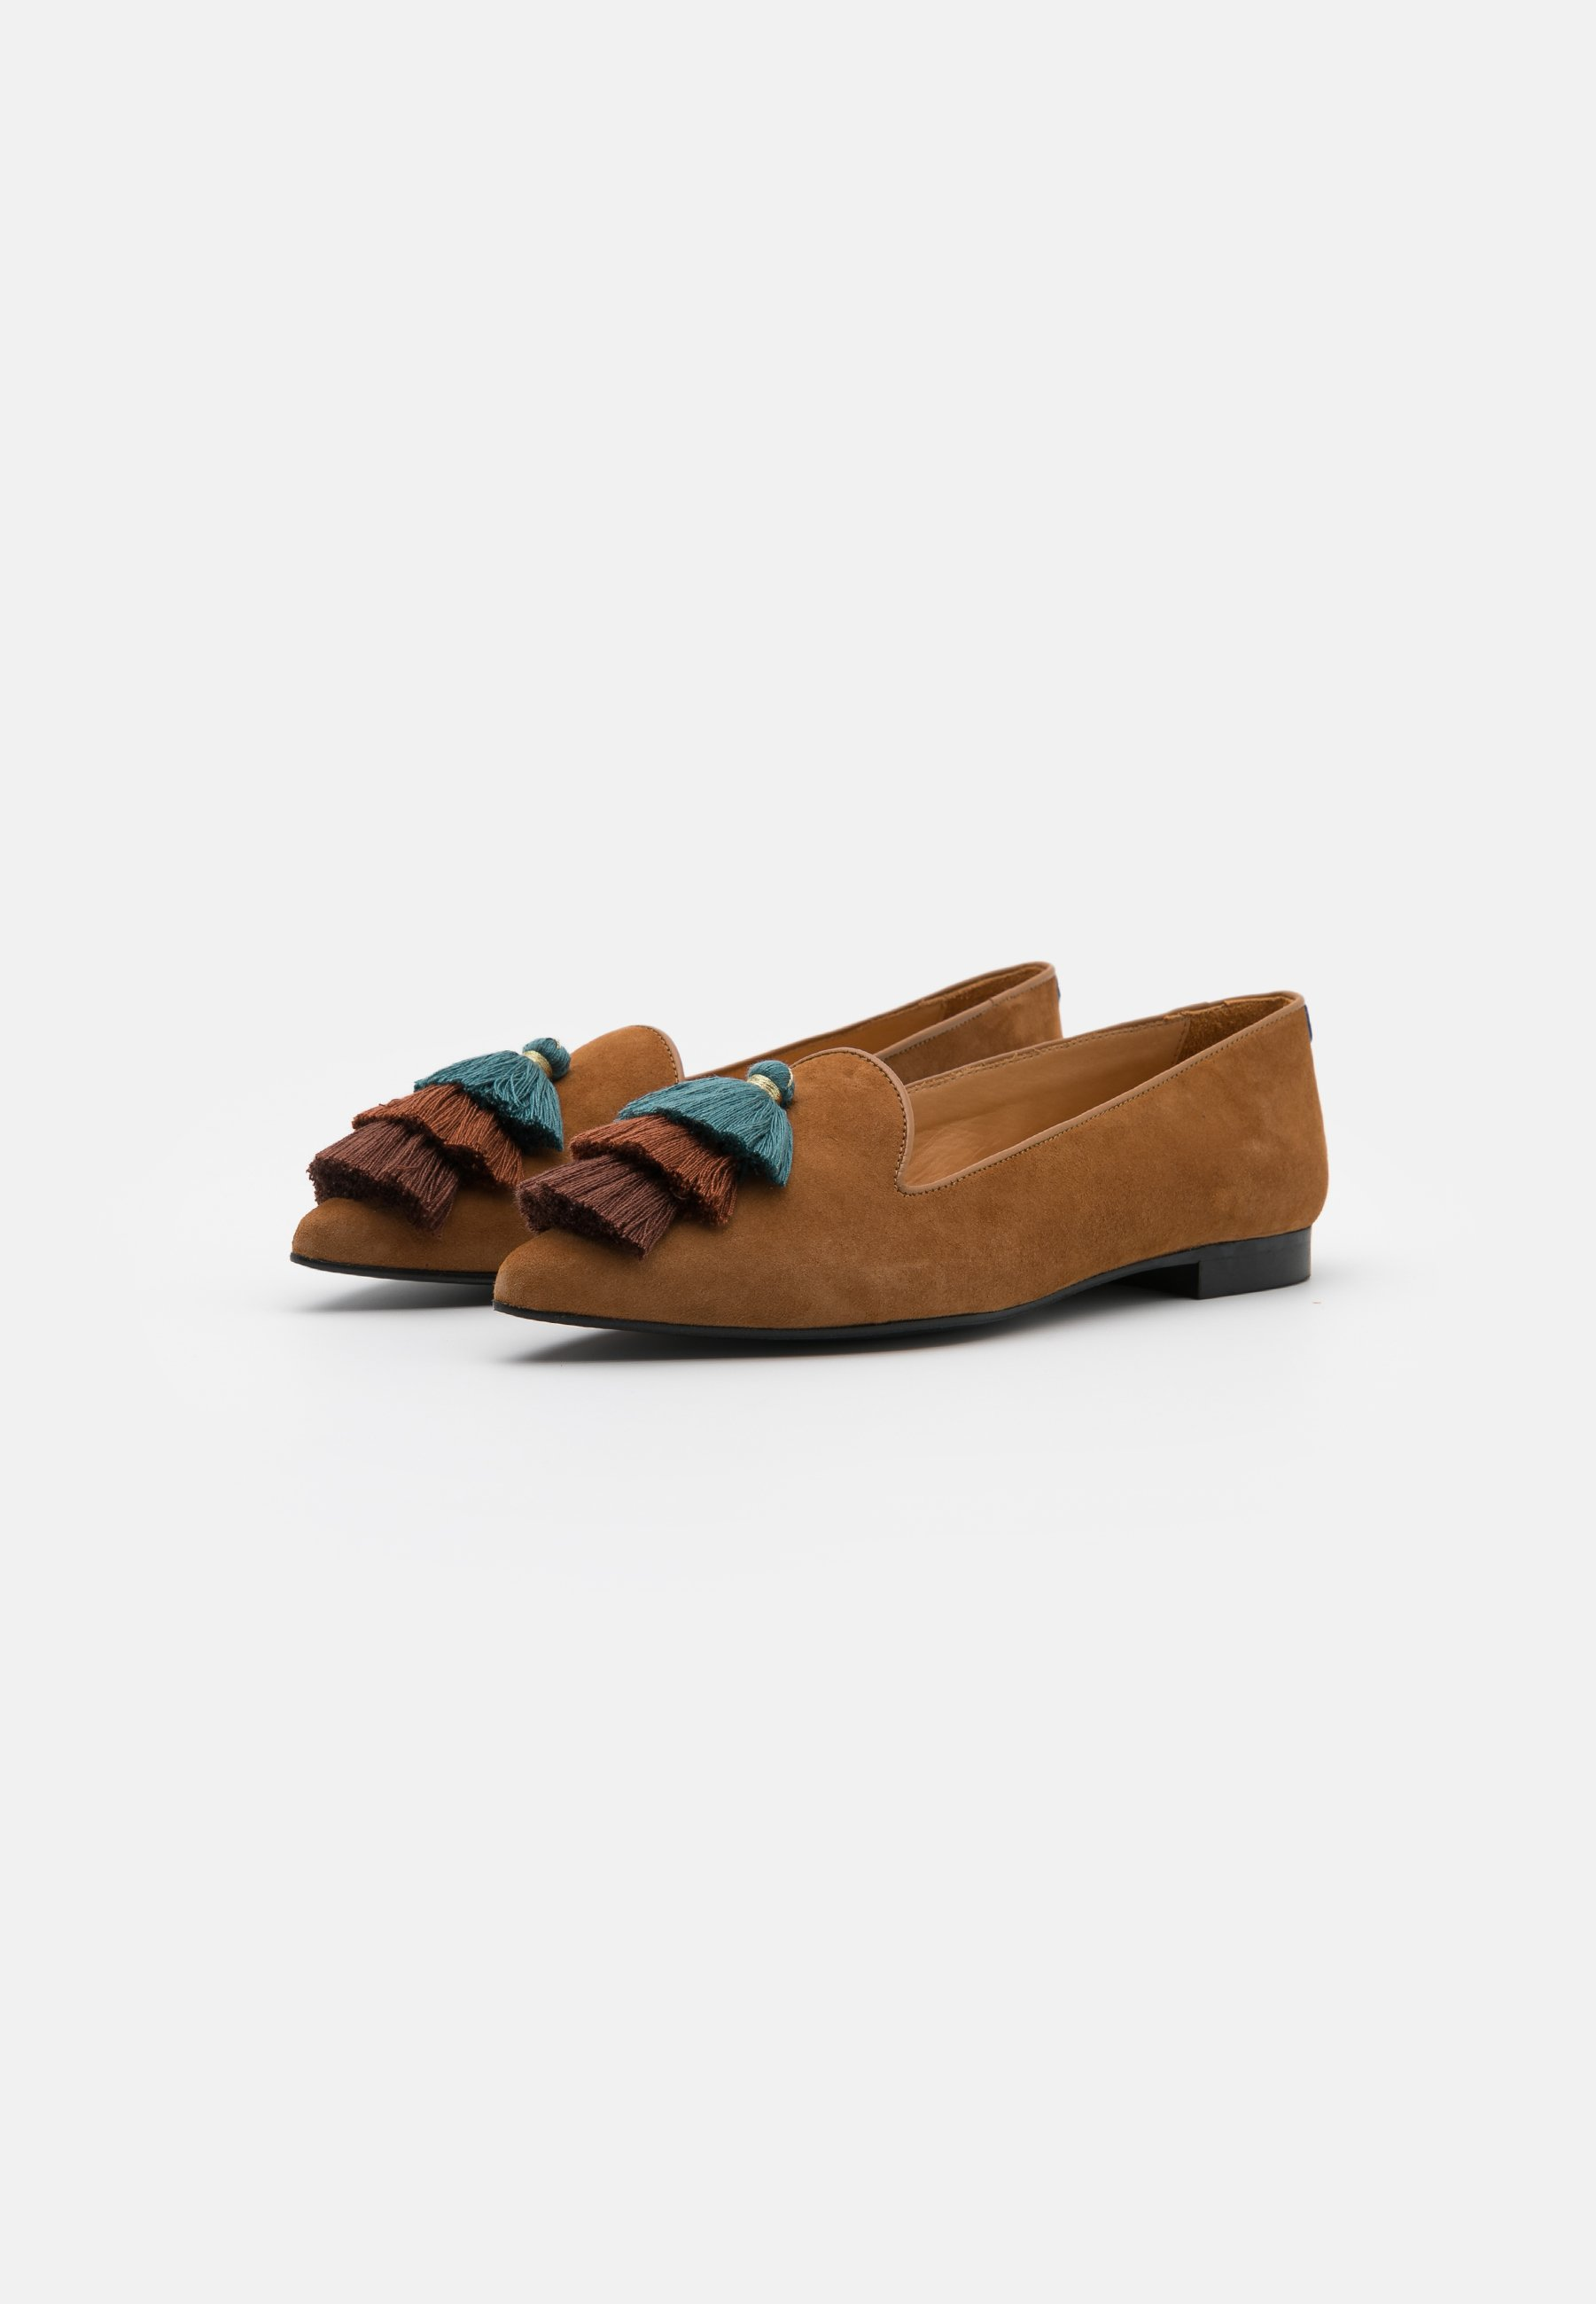 Chatelles Pointy - Loafers Camel Brown/blue